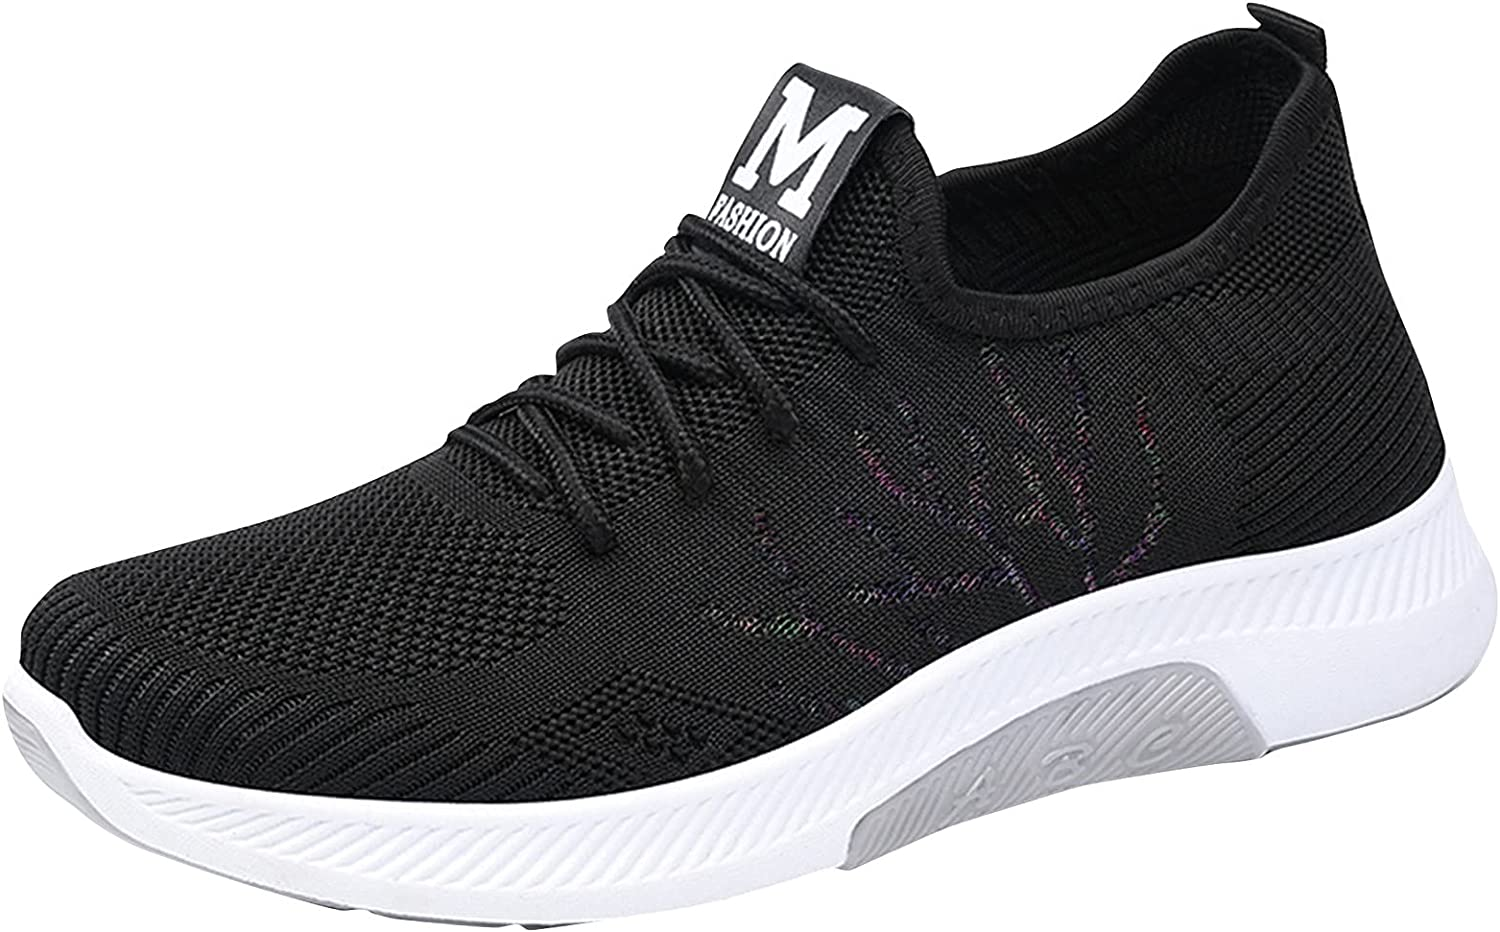 DKBL Women's Sneaker Mesh Leisure Sneakers Breathable Running Shoes Cushioning Non-Slip Fitness Sports Shoes Mens Lightweight Flat Walking Shoes Street Running Shoes Black